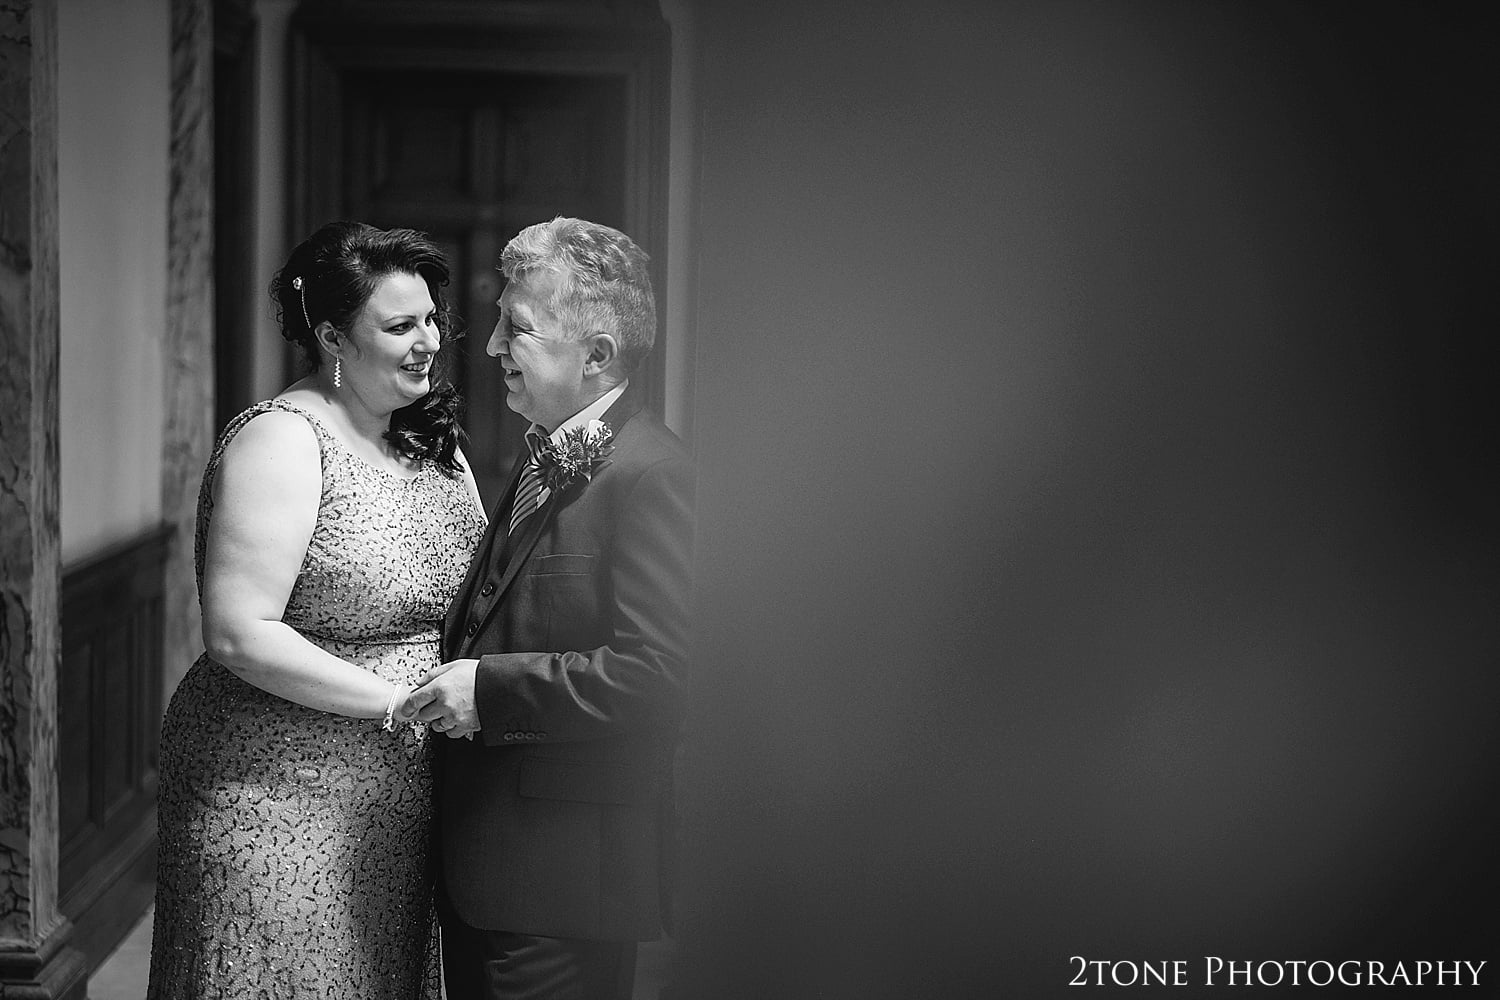 Beautiful Wedding Photography at the Lothian Chambers in Edinburgh by 2tone Photography